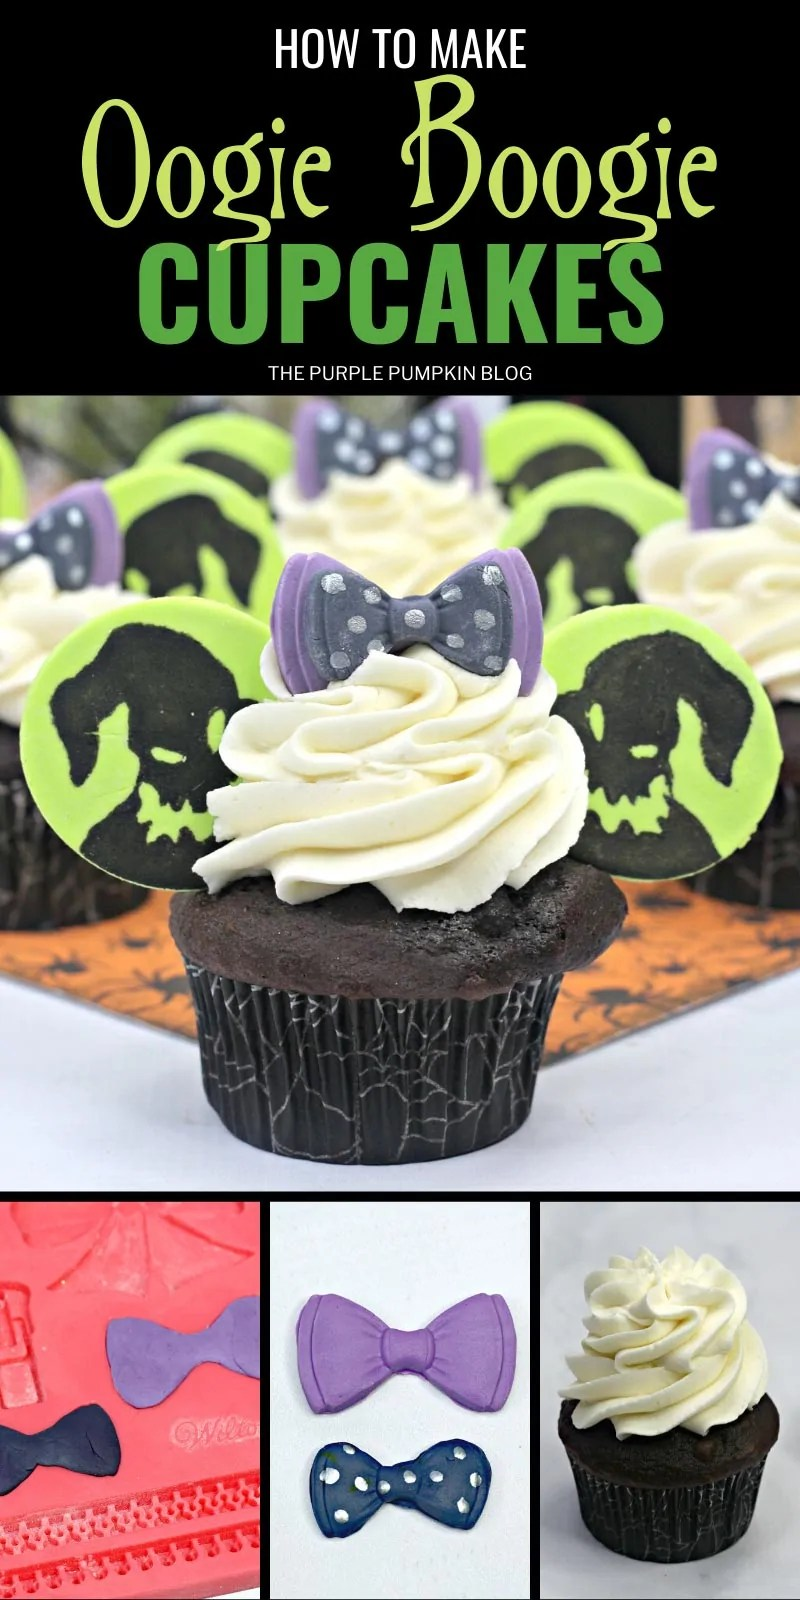 How to make Oogie Boogie Cupcakes